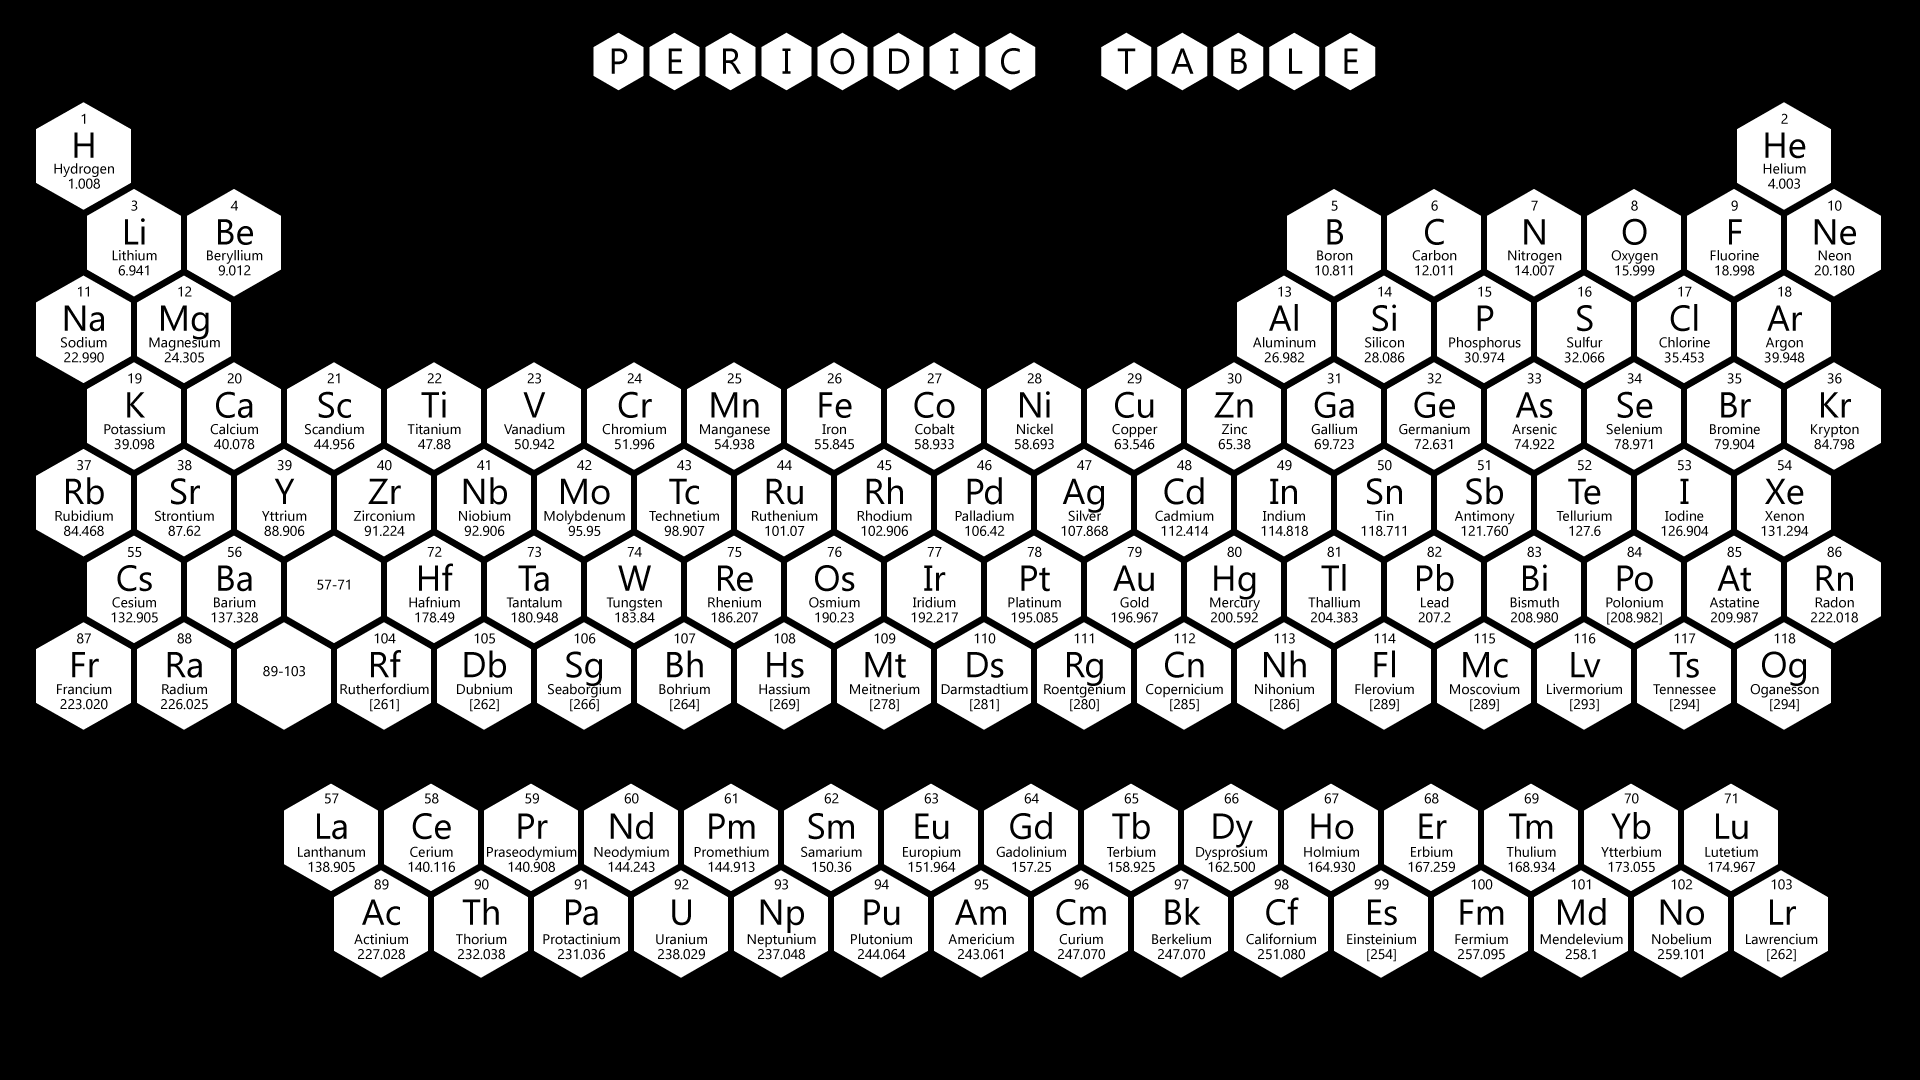 Inverted Honeycomb Periodic Table - 2017 Edition